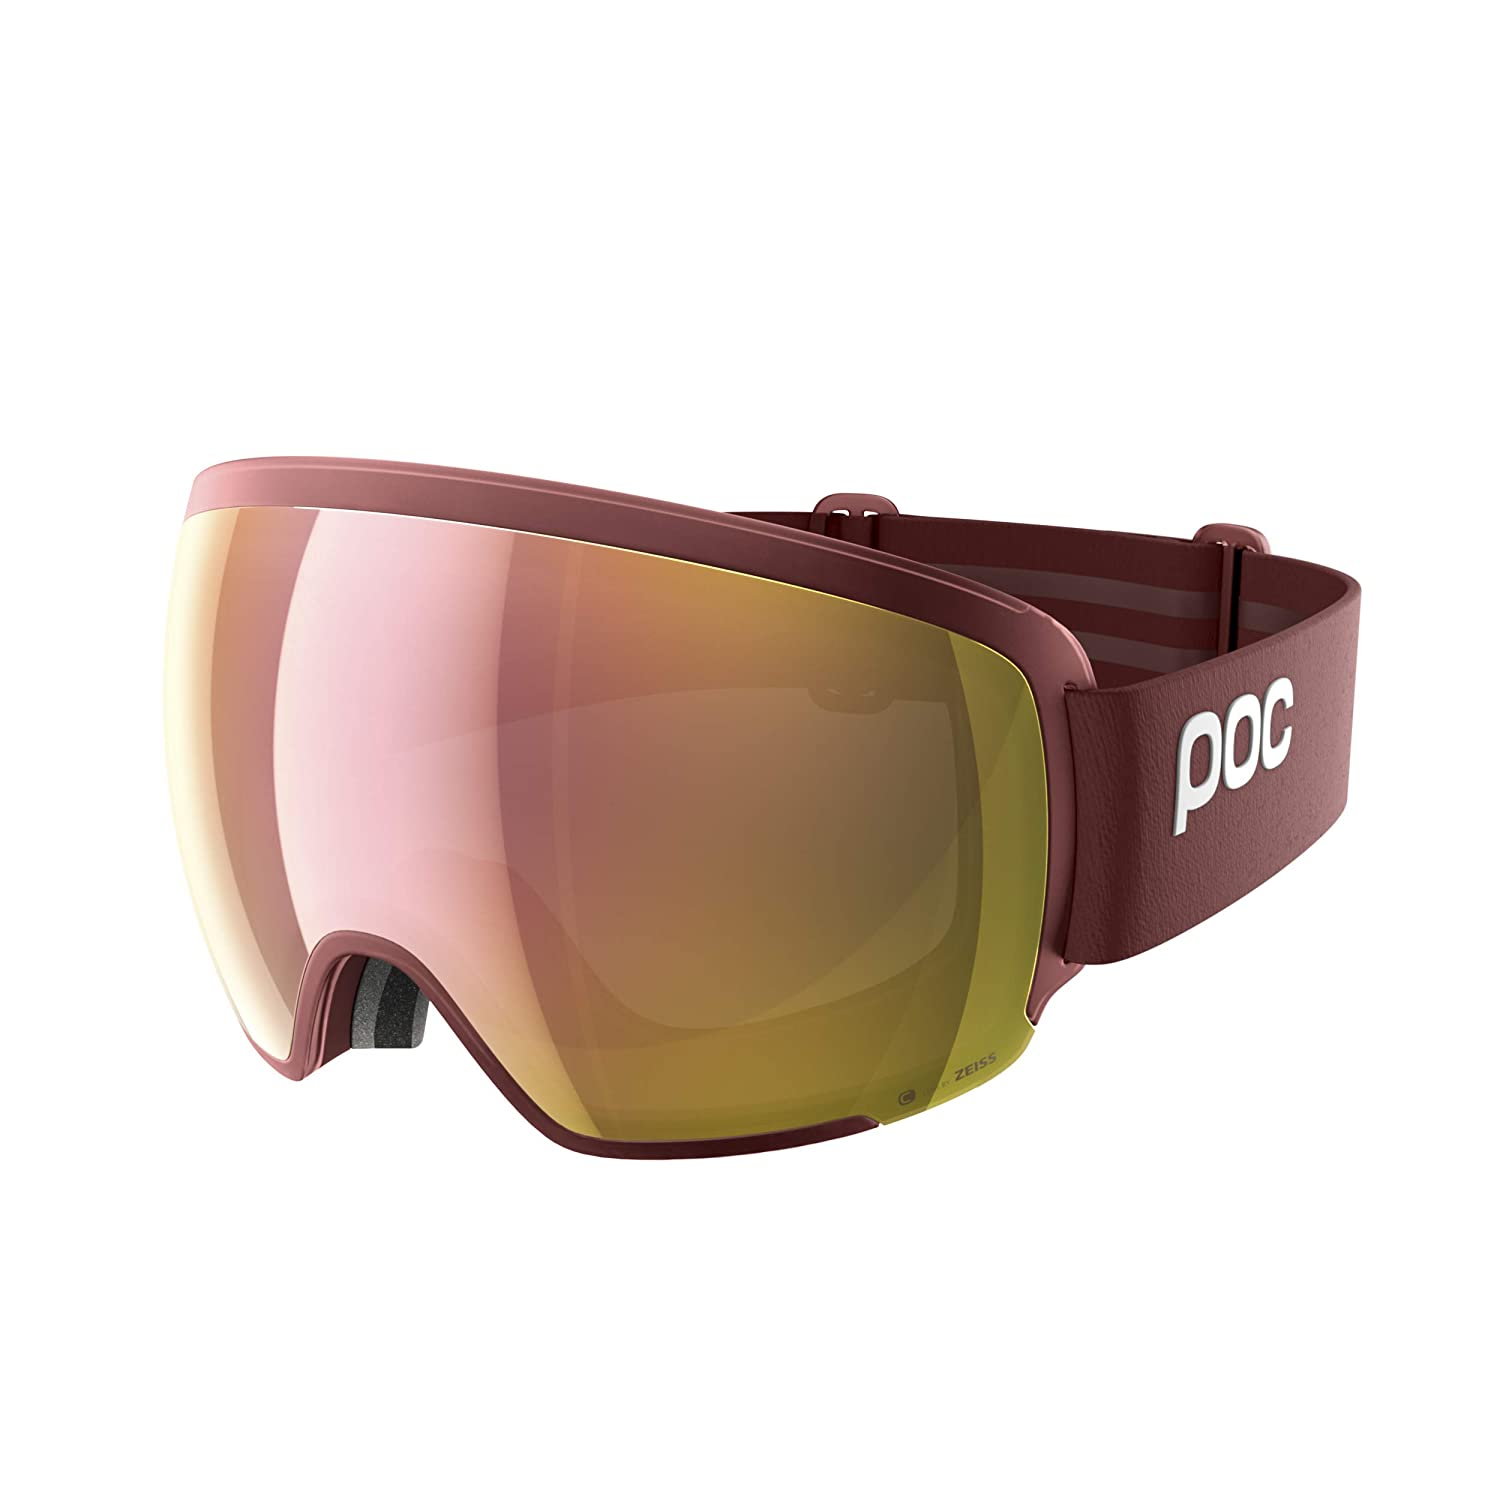 51b1cad298 Amazon.com   POC Sports Orb Clarity Goggles   Sports   Outdoors